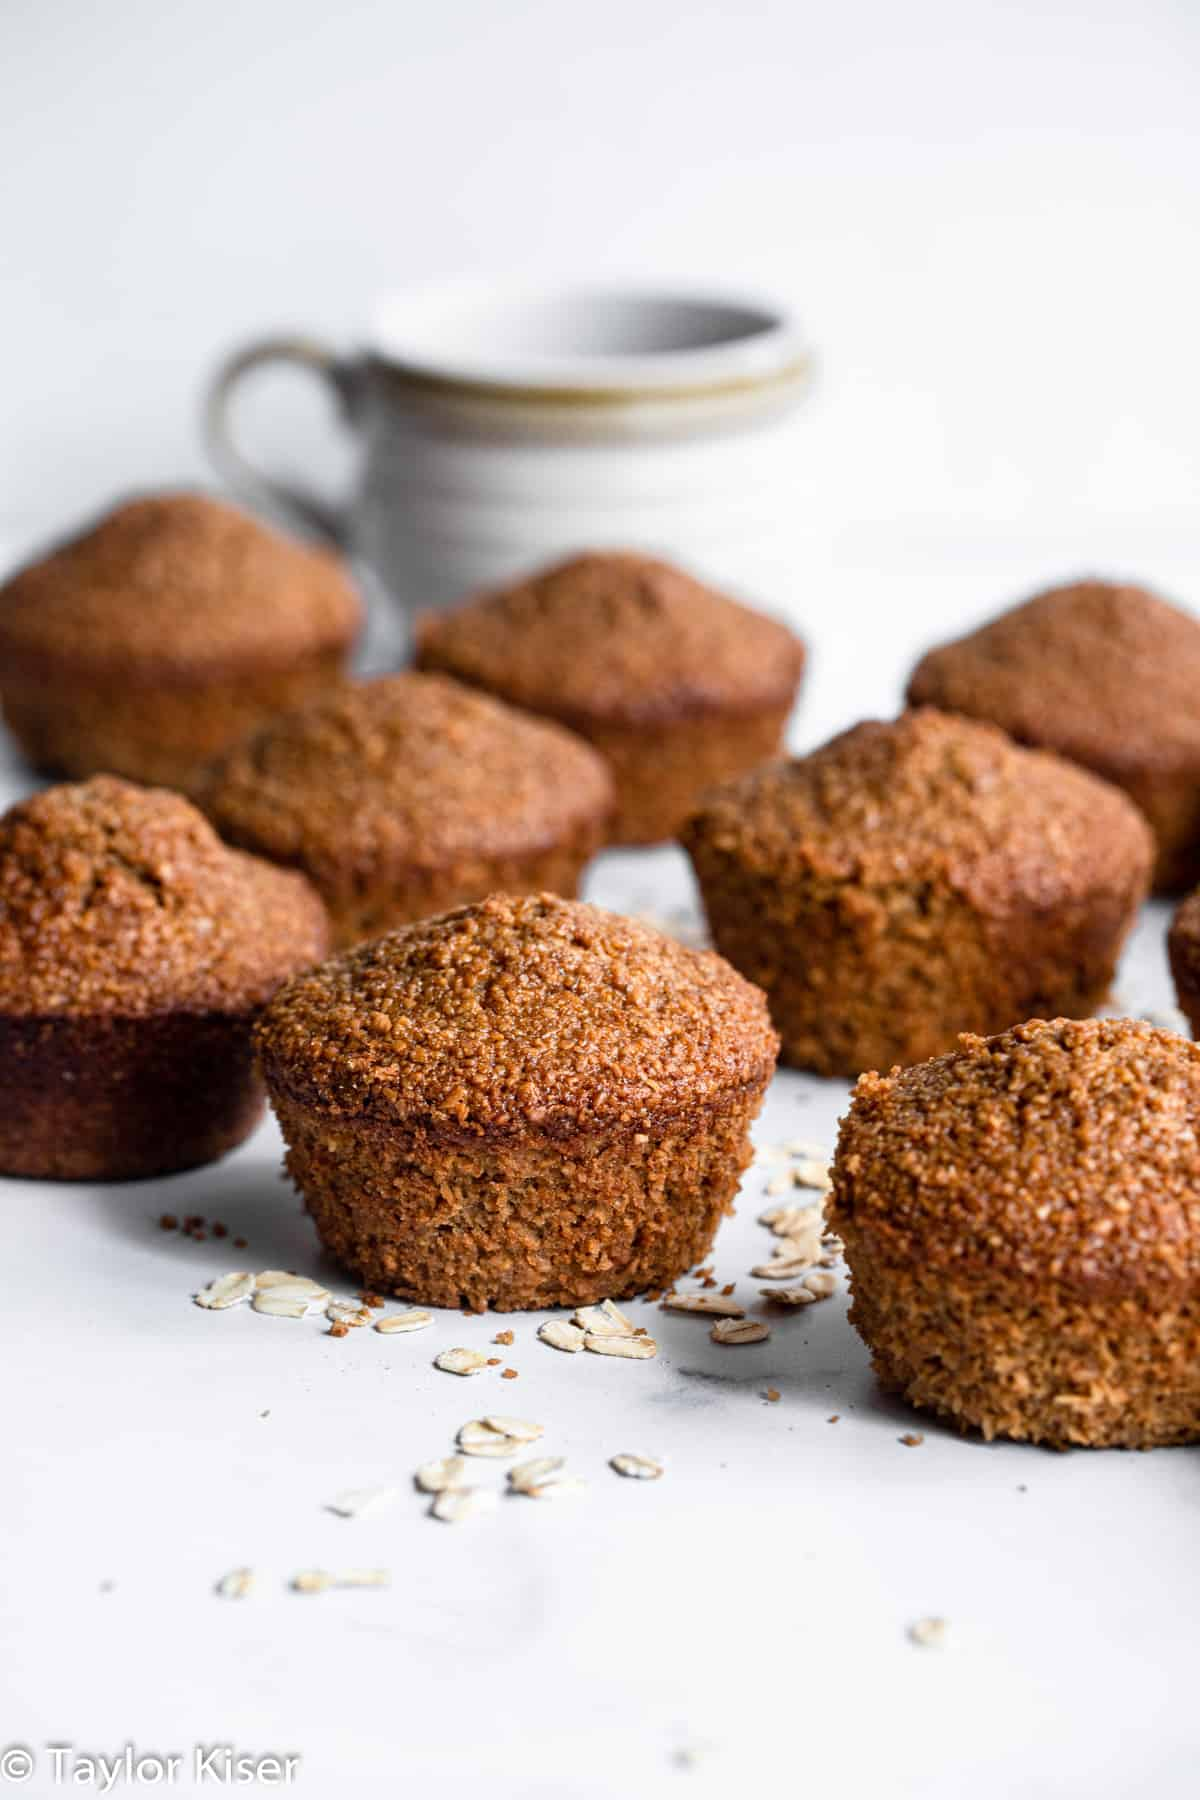 healthy oat bran muffins sitting on a table with coffee